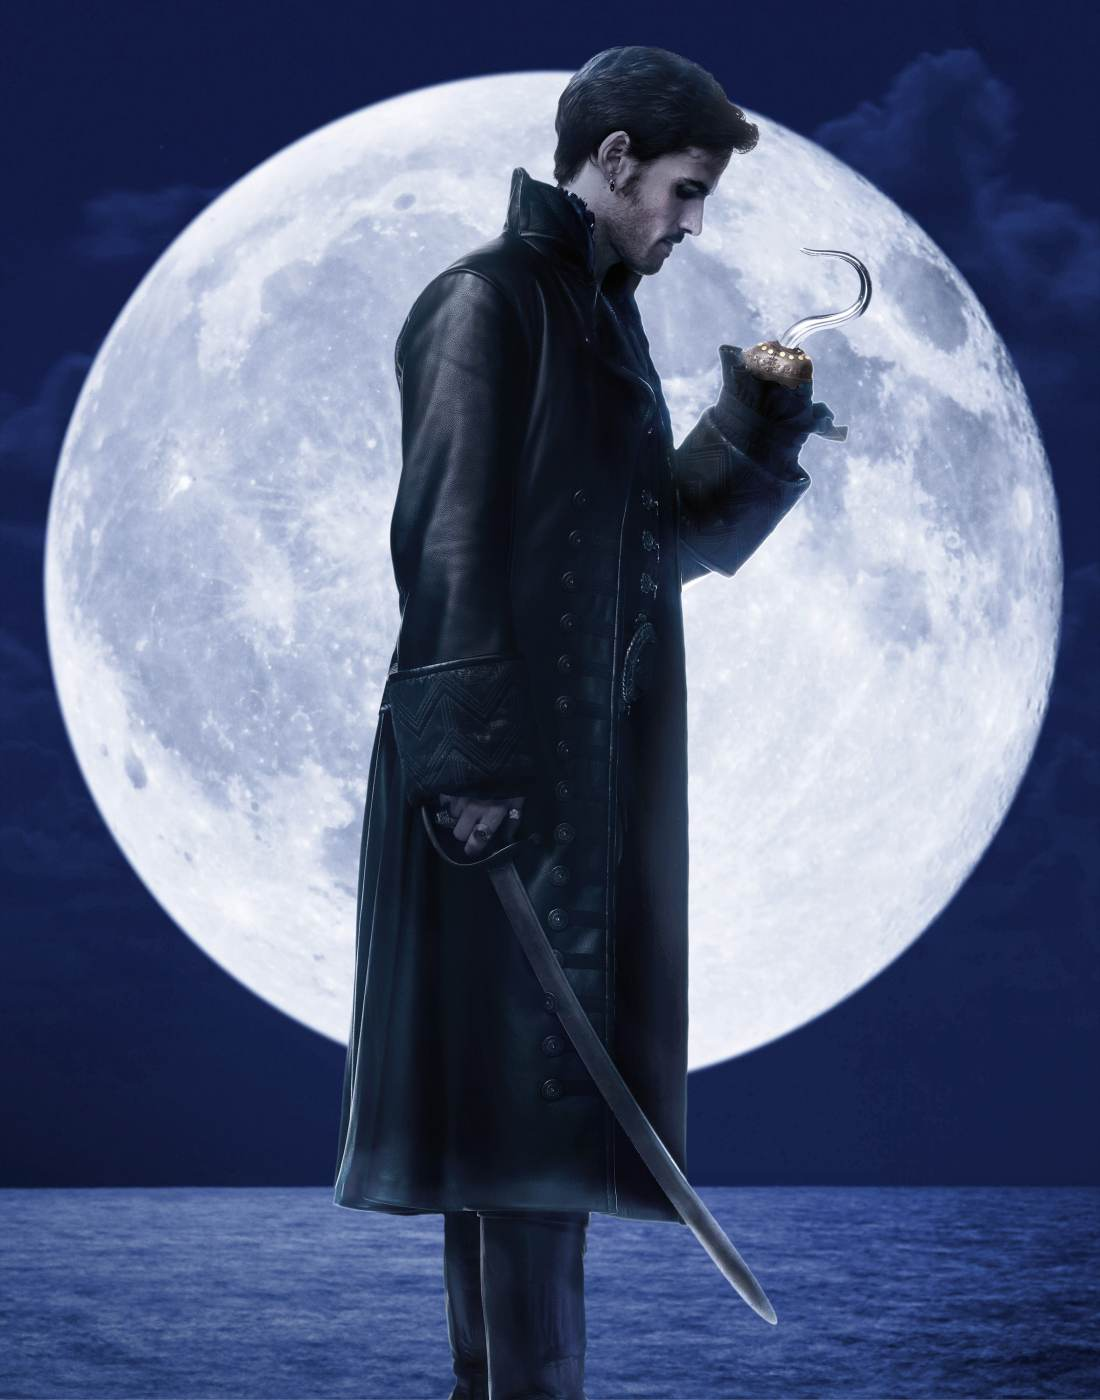 """ONCE UPON A TIME - ABC's """"Once Upon a Time"""" stars Colin O'Donoghue as Hook. (ABC/Bob D'Amico)"""